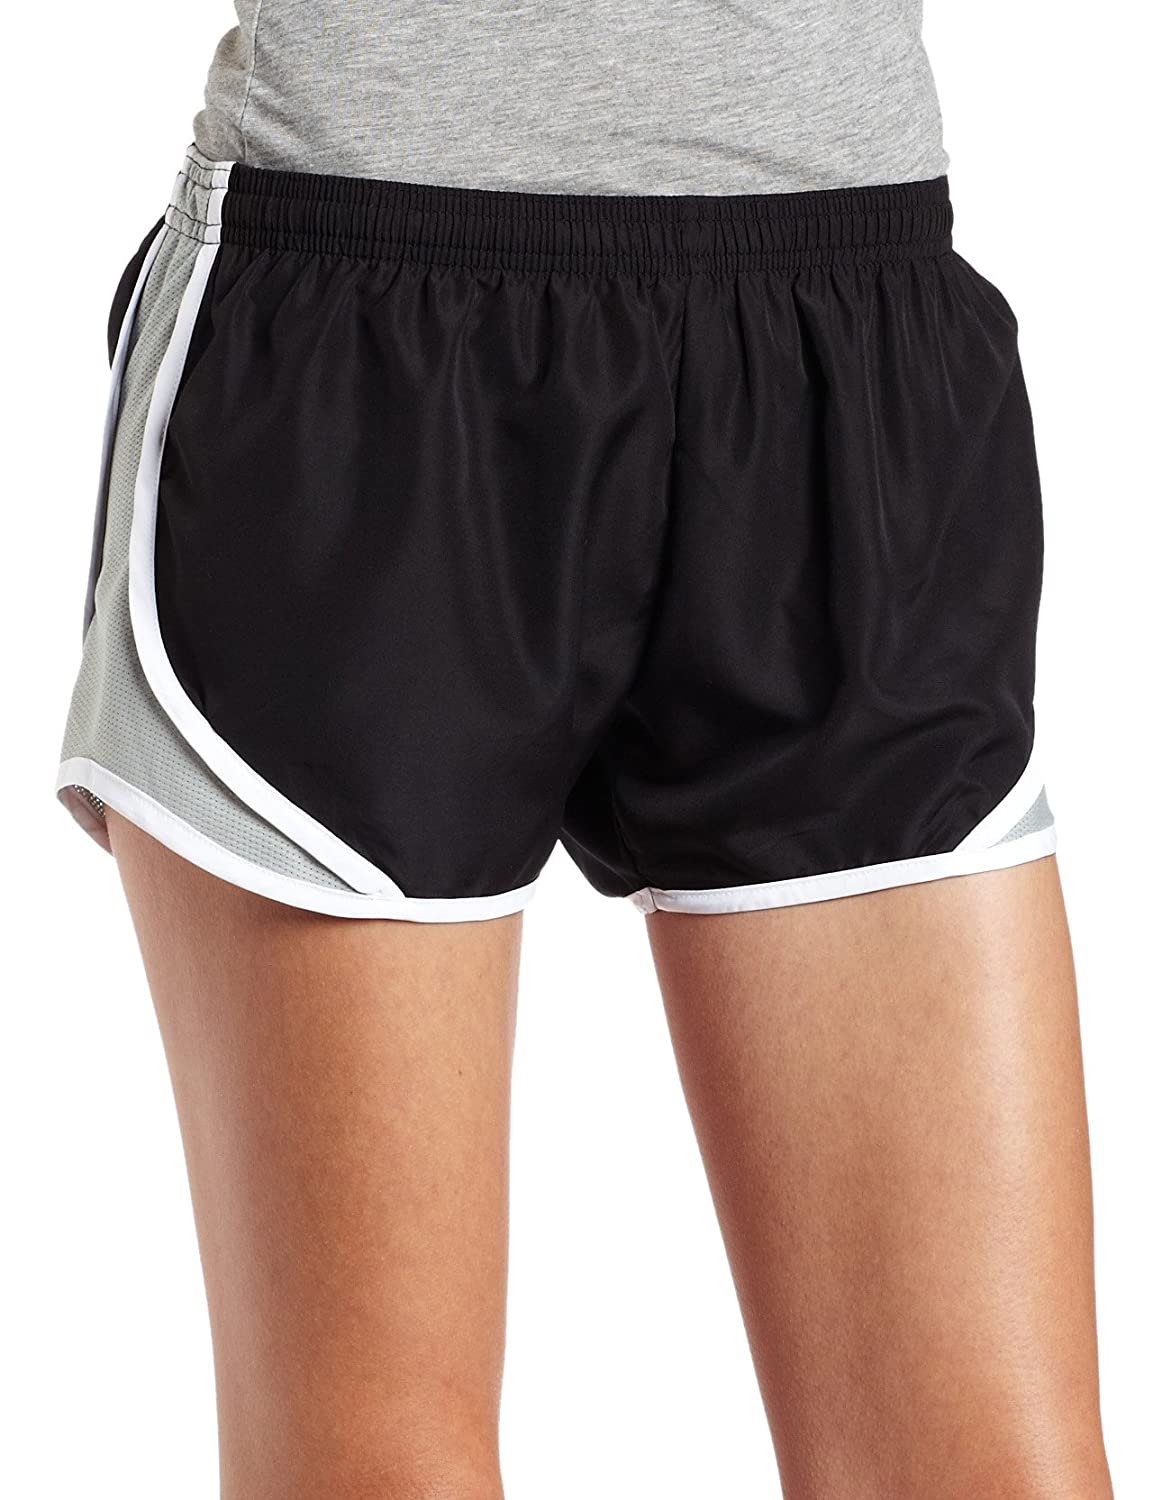 Soffe Juniors' Team Shorty Short by Soffe